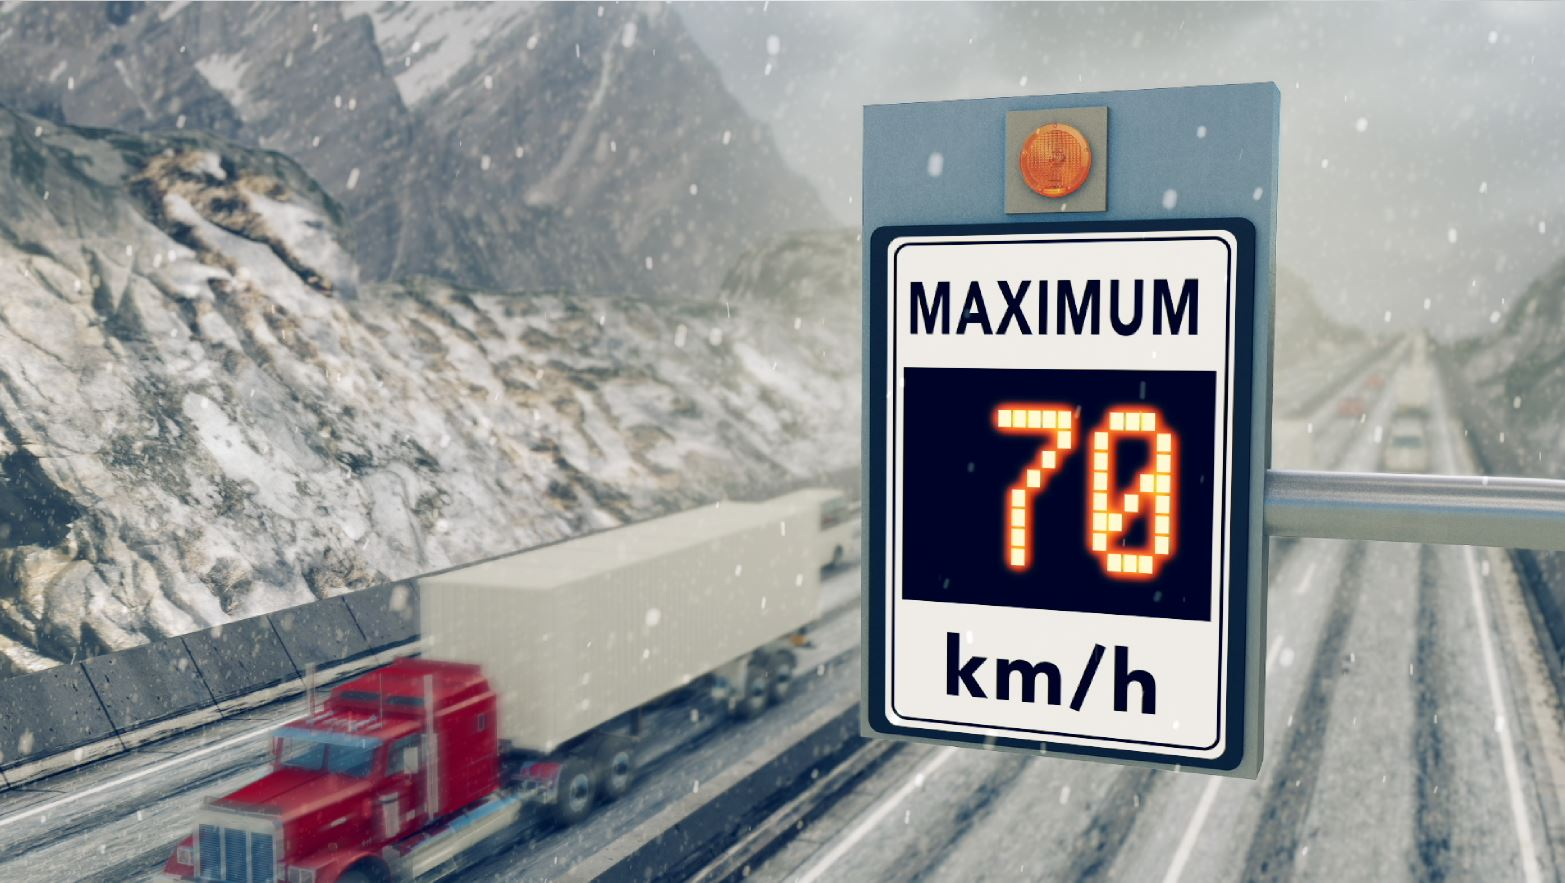 Variable speed limit sign in winter